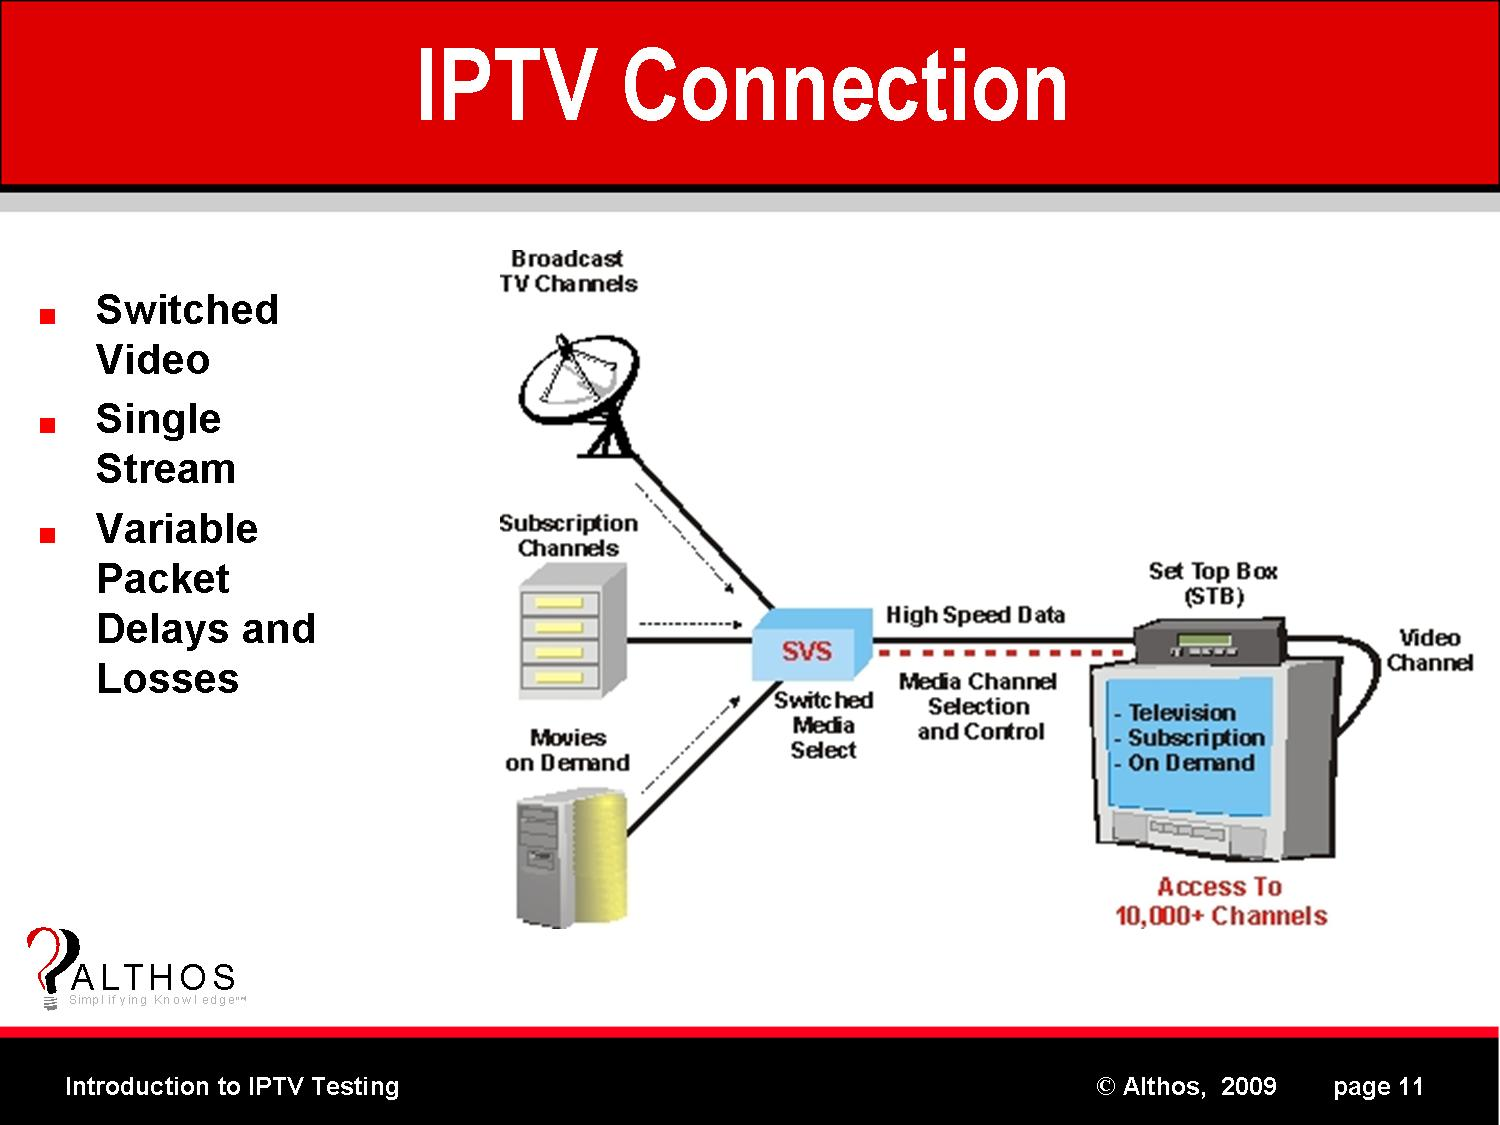 iptv wiring diagram with Iptv Testing Tutorial Connection on Brand New Boxed DSD 1132 Decoders from MultiChoice moreover 1237555 Home Theater Connectivity Schematic Design Tools moreover Ir Sensors Wiring Diagram in addition Ipteba1 likewise Gear Router Wiring Diagram.